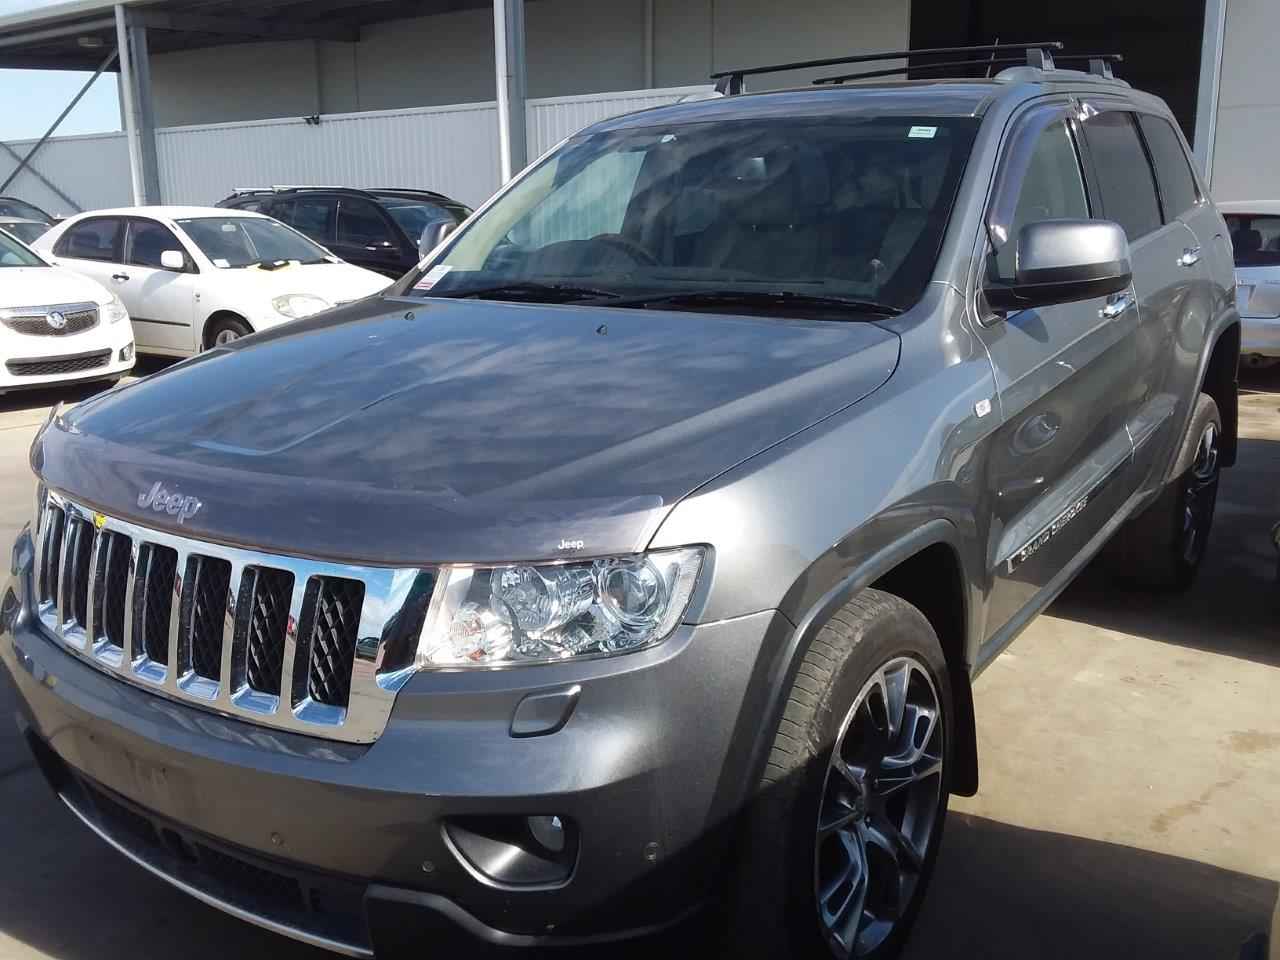 2012 Jeep Grand Cherokee Overland (4x4) WK T/Diesel Auto Wagon 122,700km